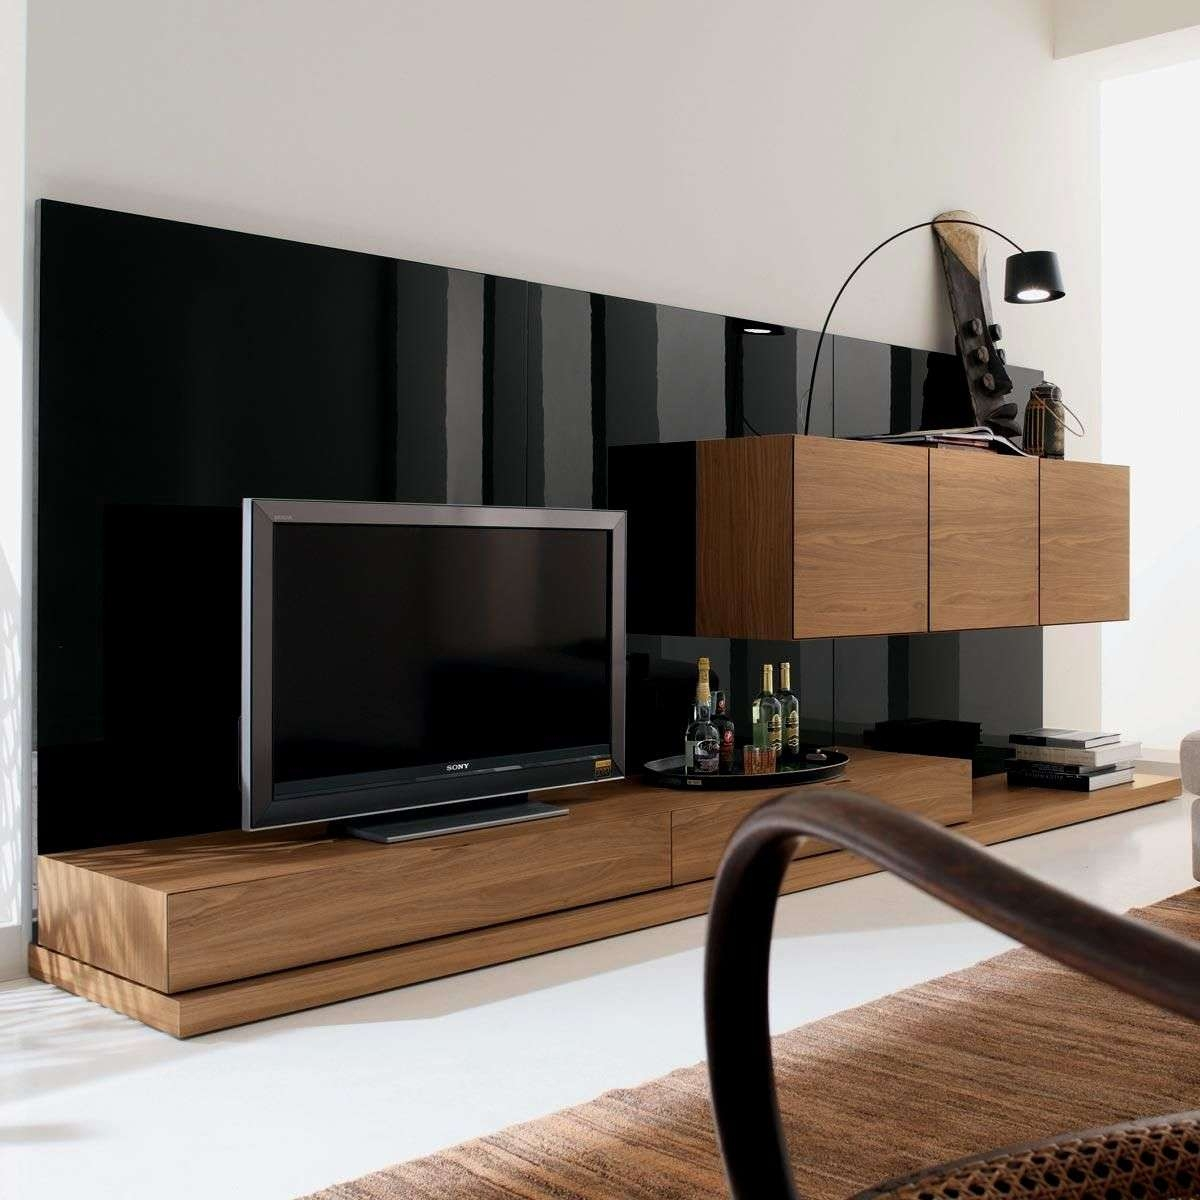 Home Design Modern Tv Cabinet Fantastic | Zhydoor For Modern Tv Cabinets (View 12 of 20)